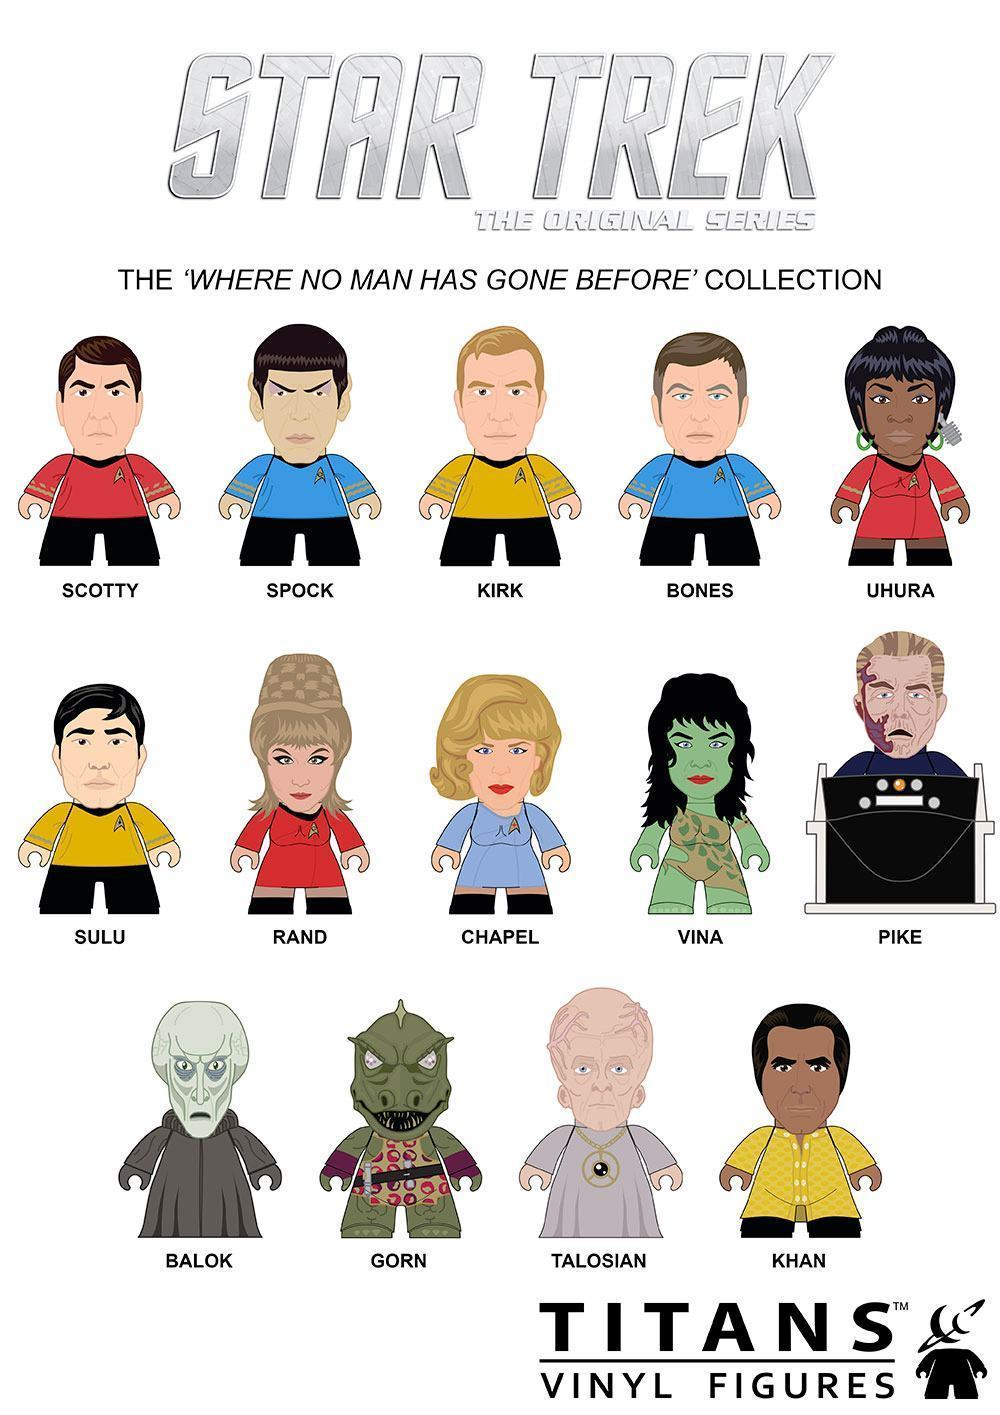 Star-Trek-Original-Series-Where-No-Man-Has-Gone-Before-TITANS-Mini-Collection-03